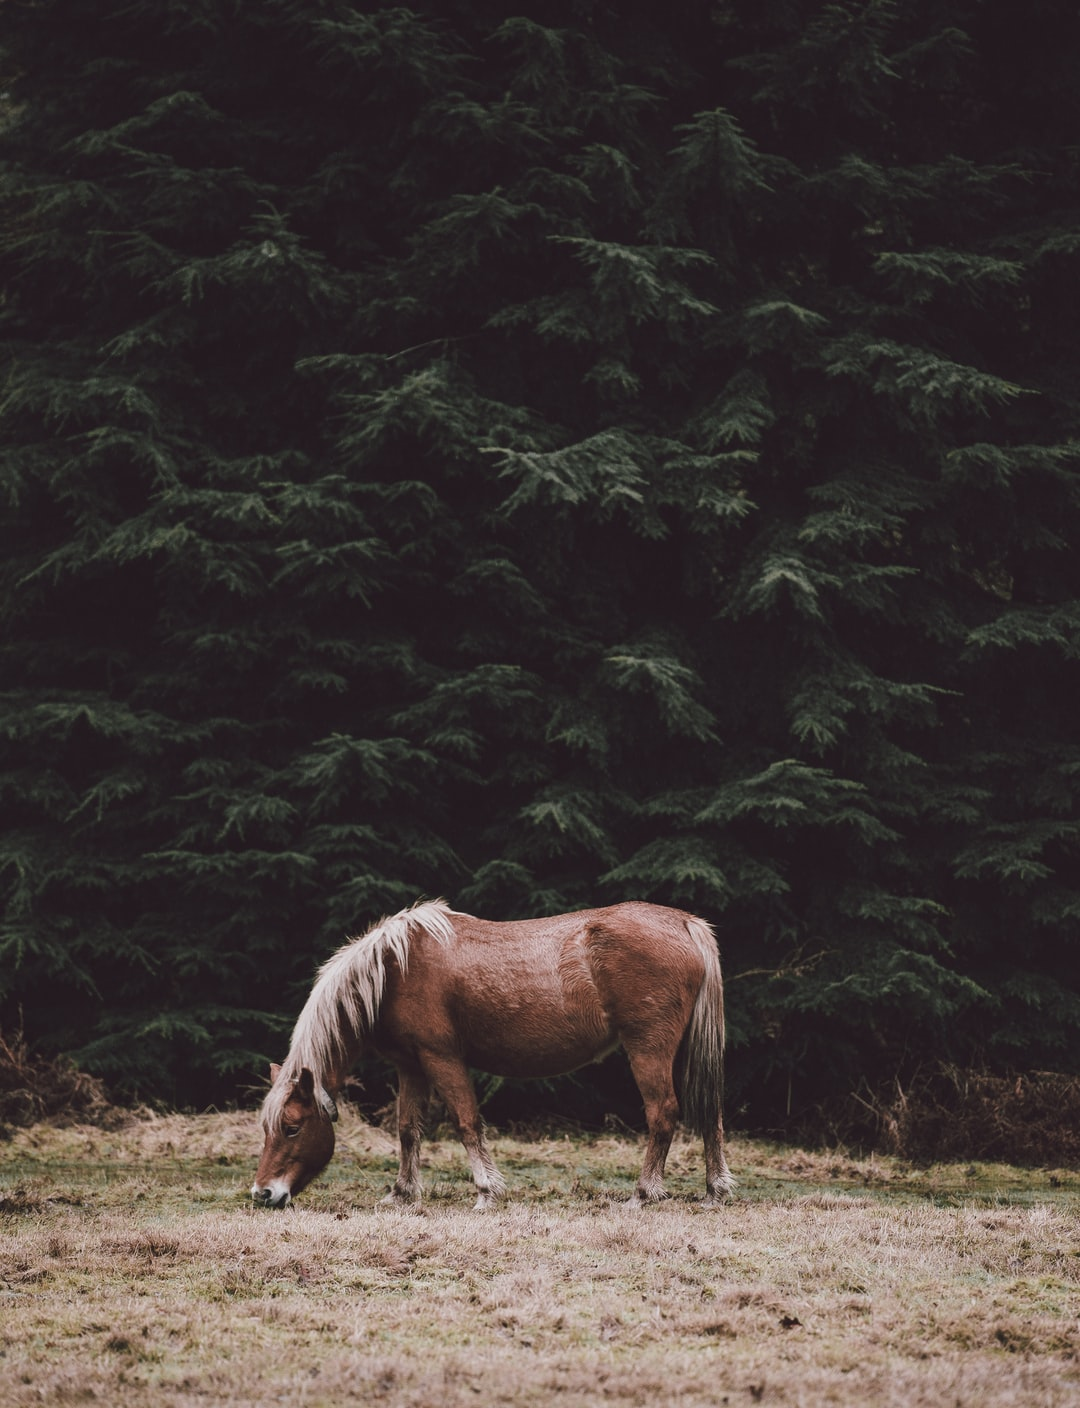 Horse grazing in the shade of conifers